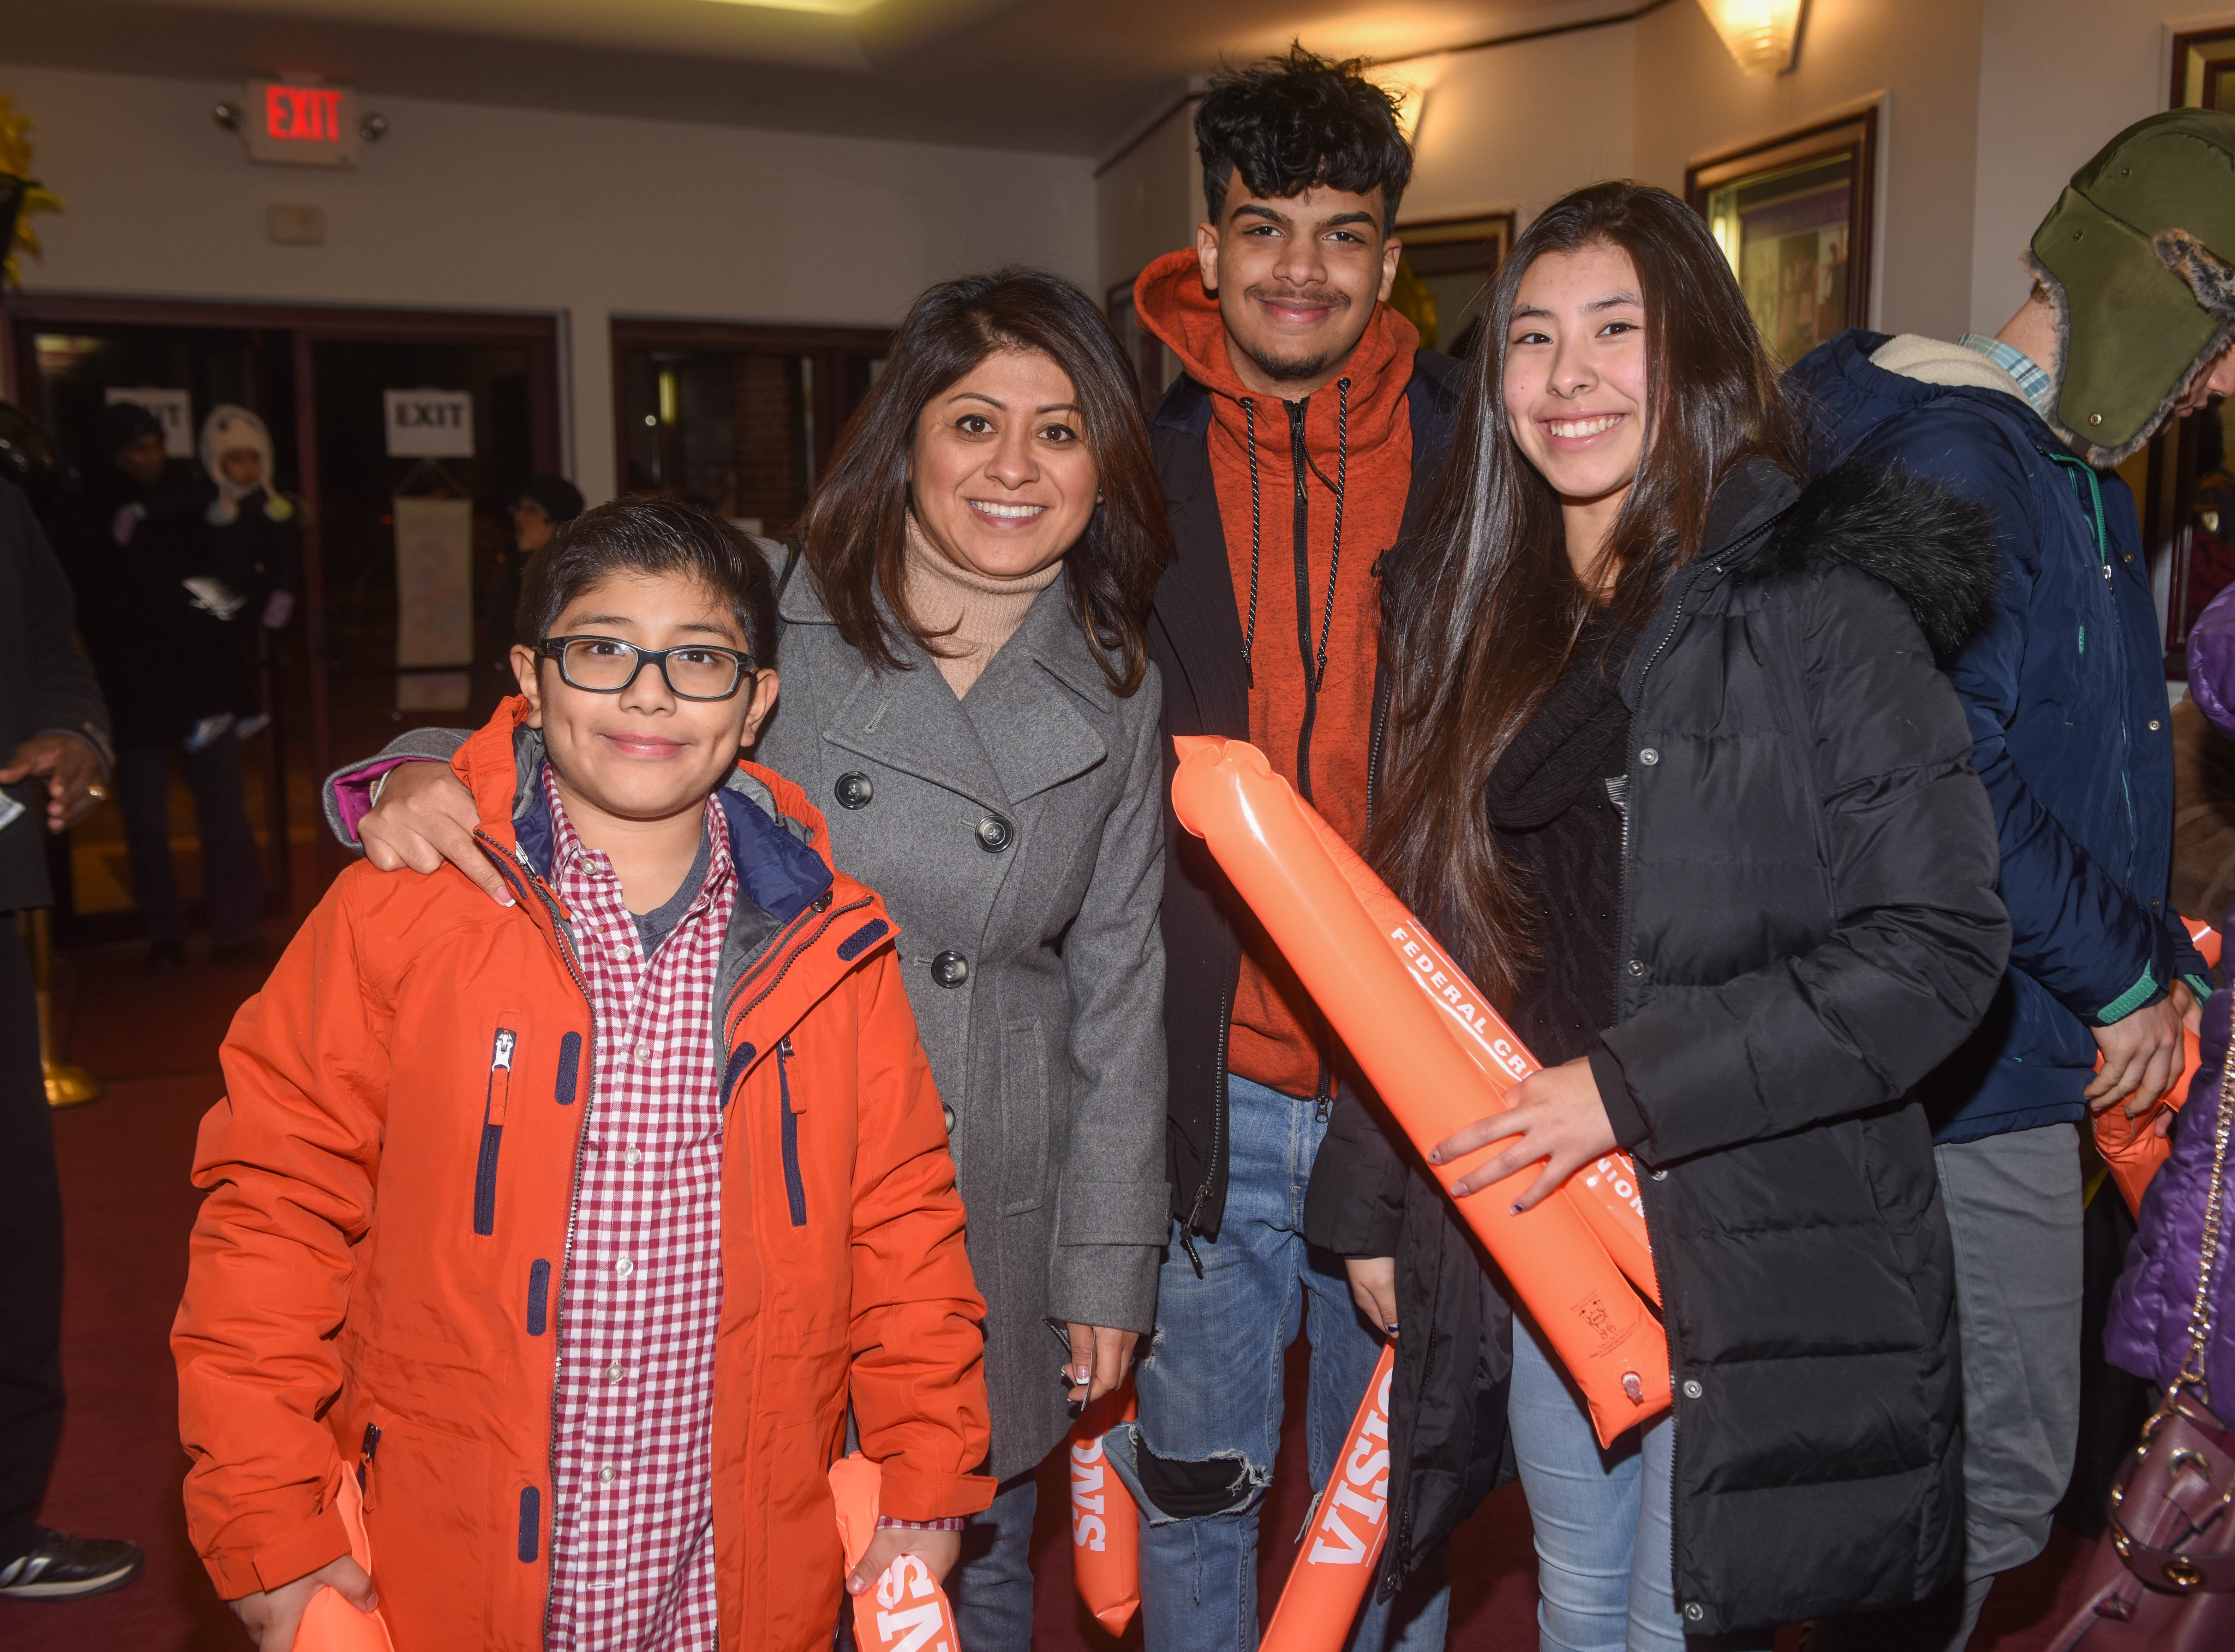 Christopher, Flor Rameriez, Joey and Nayzeth. The 2019 Englewood Idol was held at bergenPAC theater. The singing competition is open to any high school student who currently lives or goes to school in Englewood, NJ. This years winner was Genesis Capellan. 01/11/2019